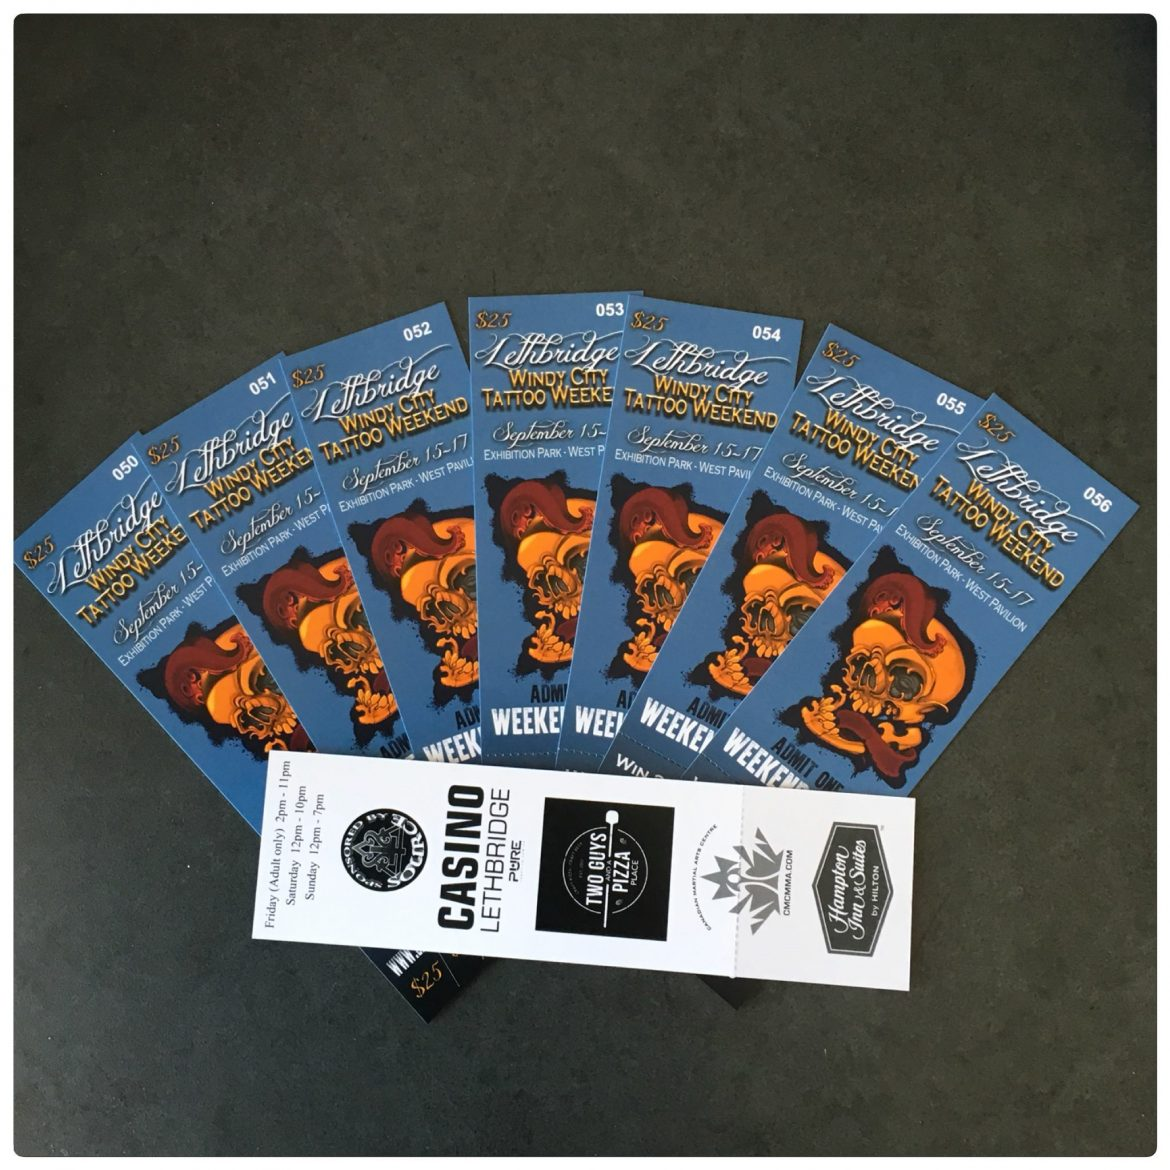 Advance Weekend Passes to the Lethbridge Tattoo Convention now available!